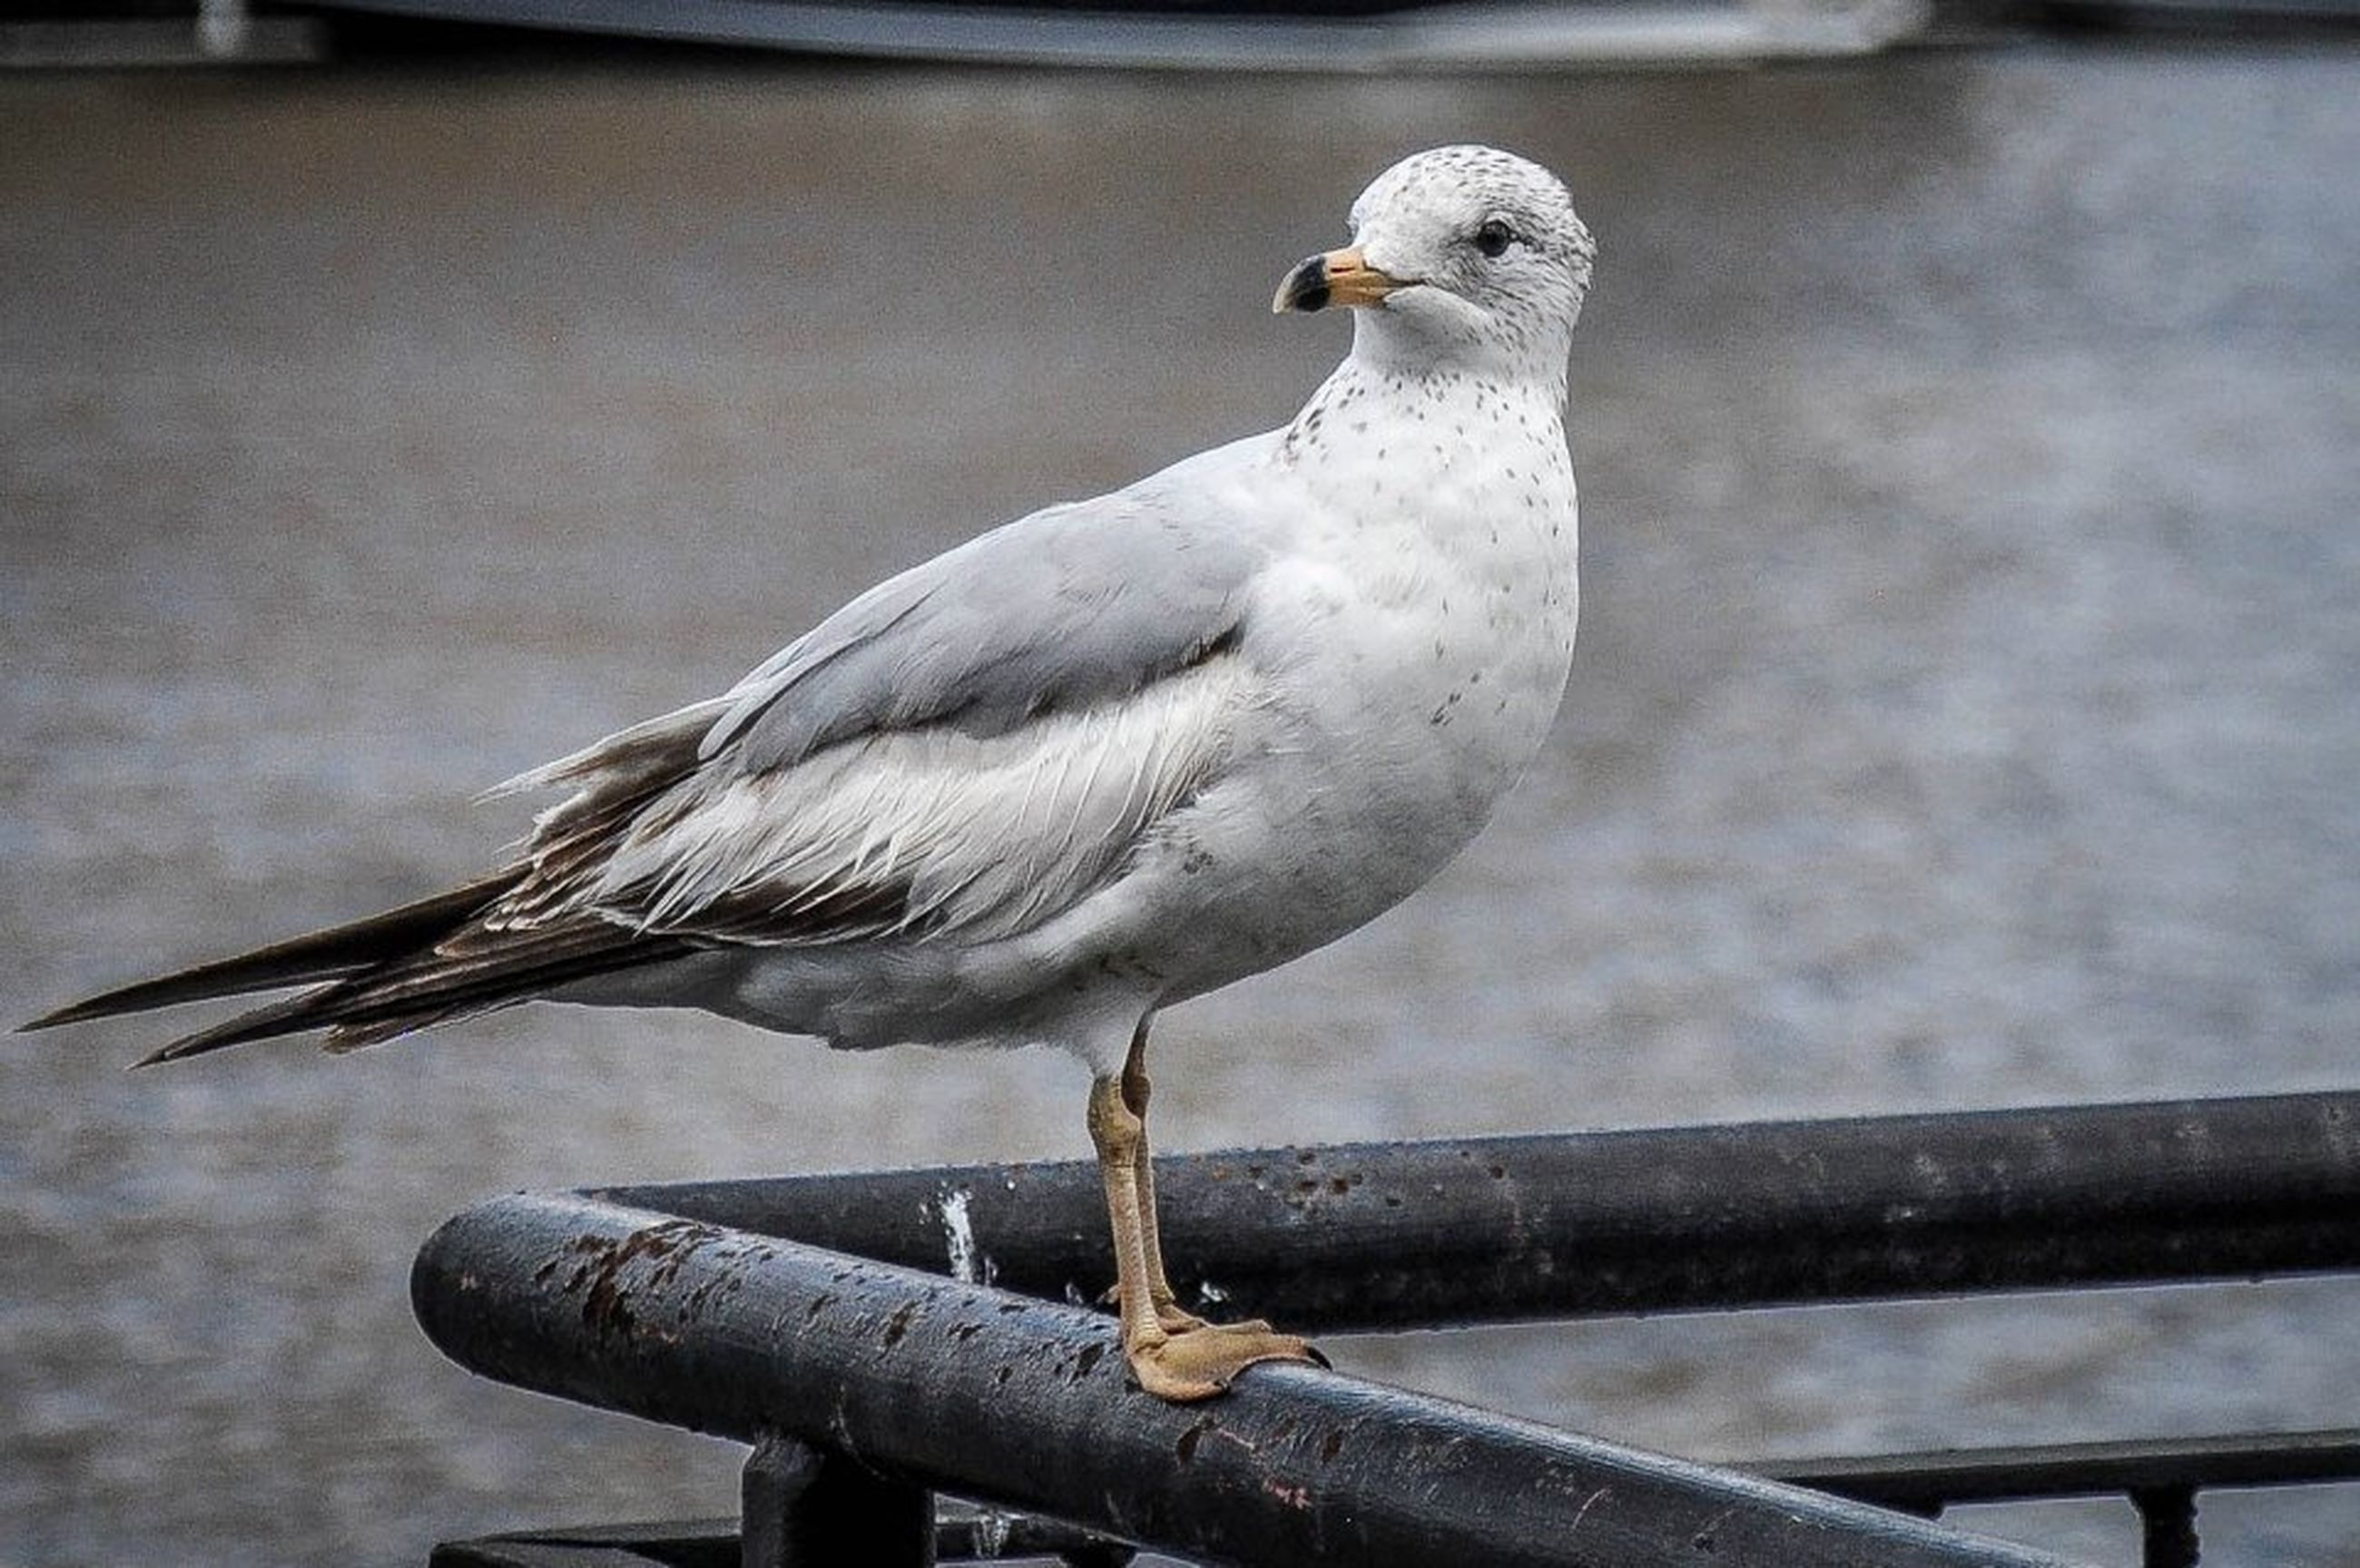 bird, animal themes, animals in the wild, one animal, wildlife, perching, focus on foreground, beak, seagull, railing, full length, close-up, nature, outdoors, wood - material, day, side view, wooden post, no people, metal